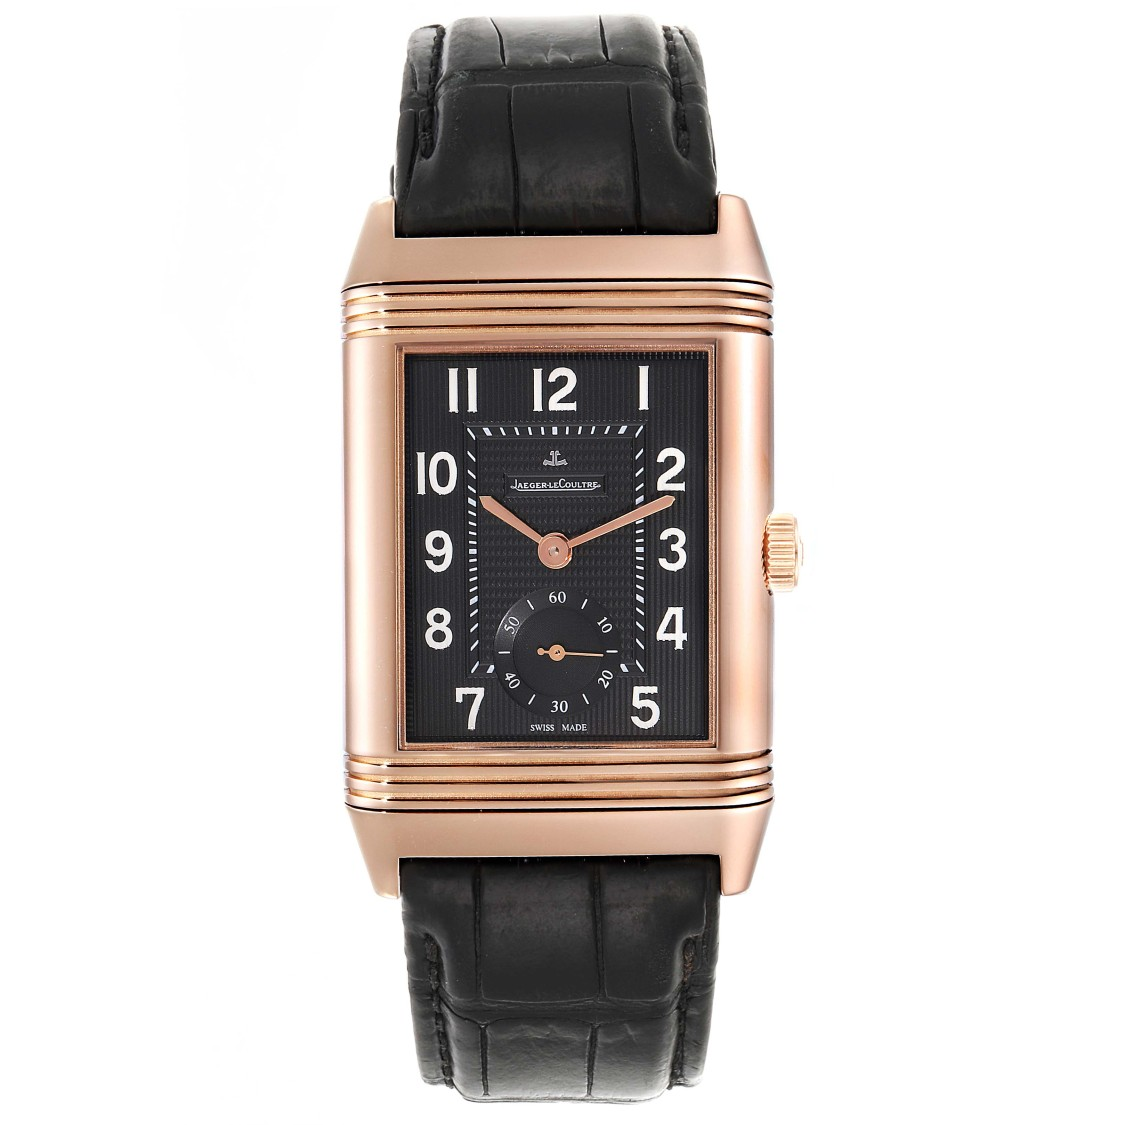 Jaeger-lecoultre Grande Reverso 976 Rose Gold Watch 273.2.04 Q3732470 In Black